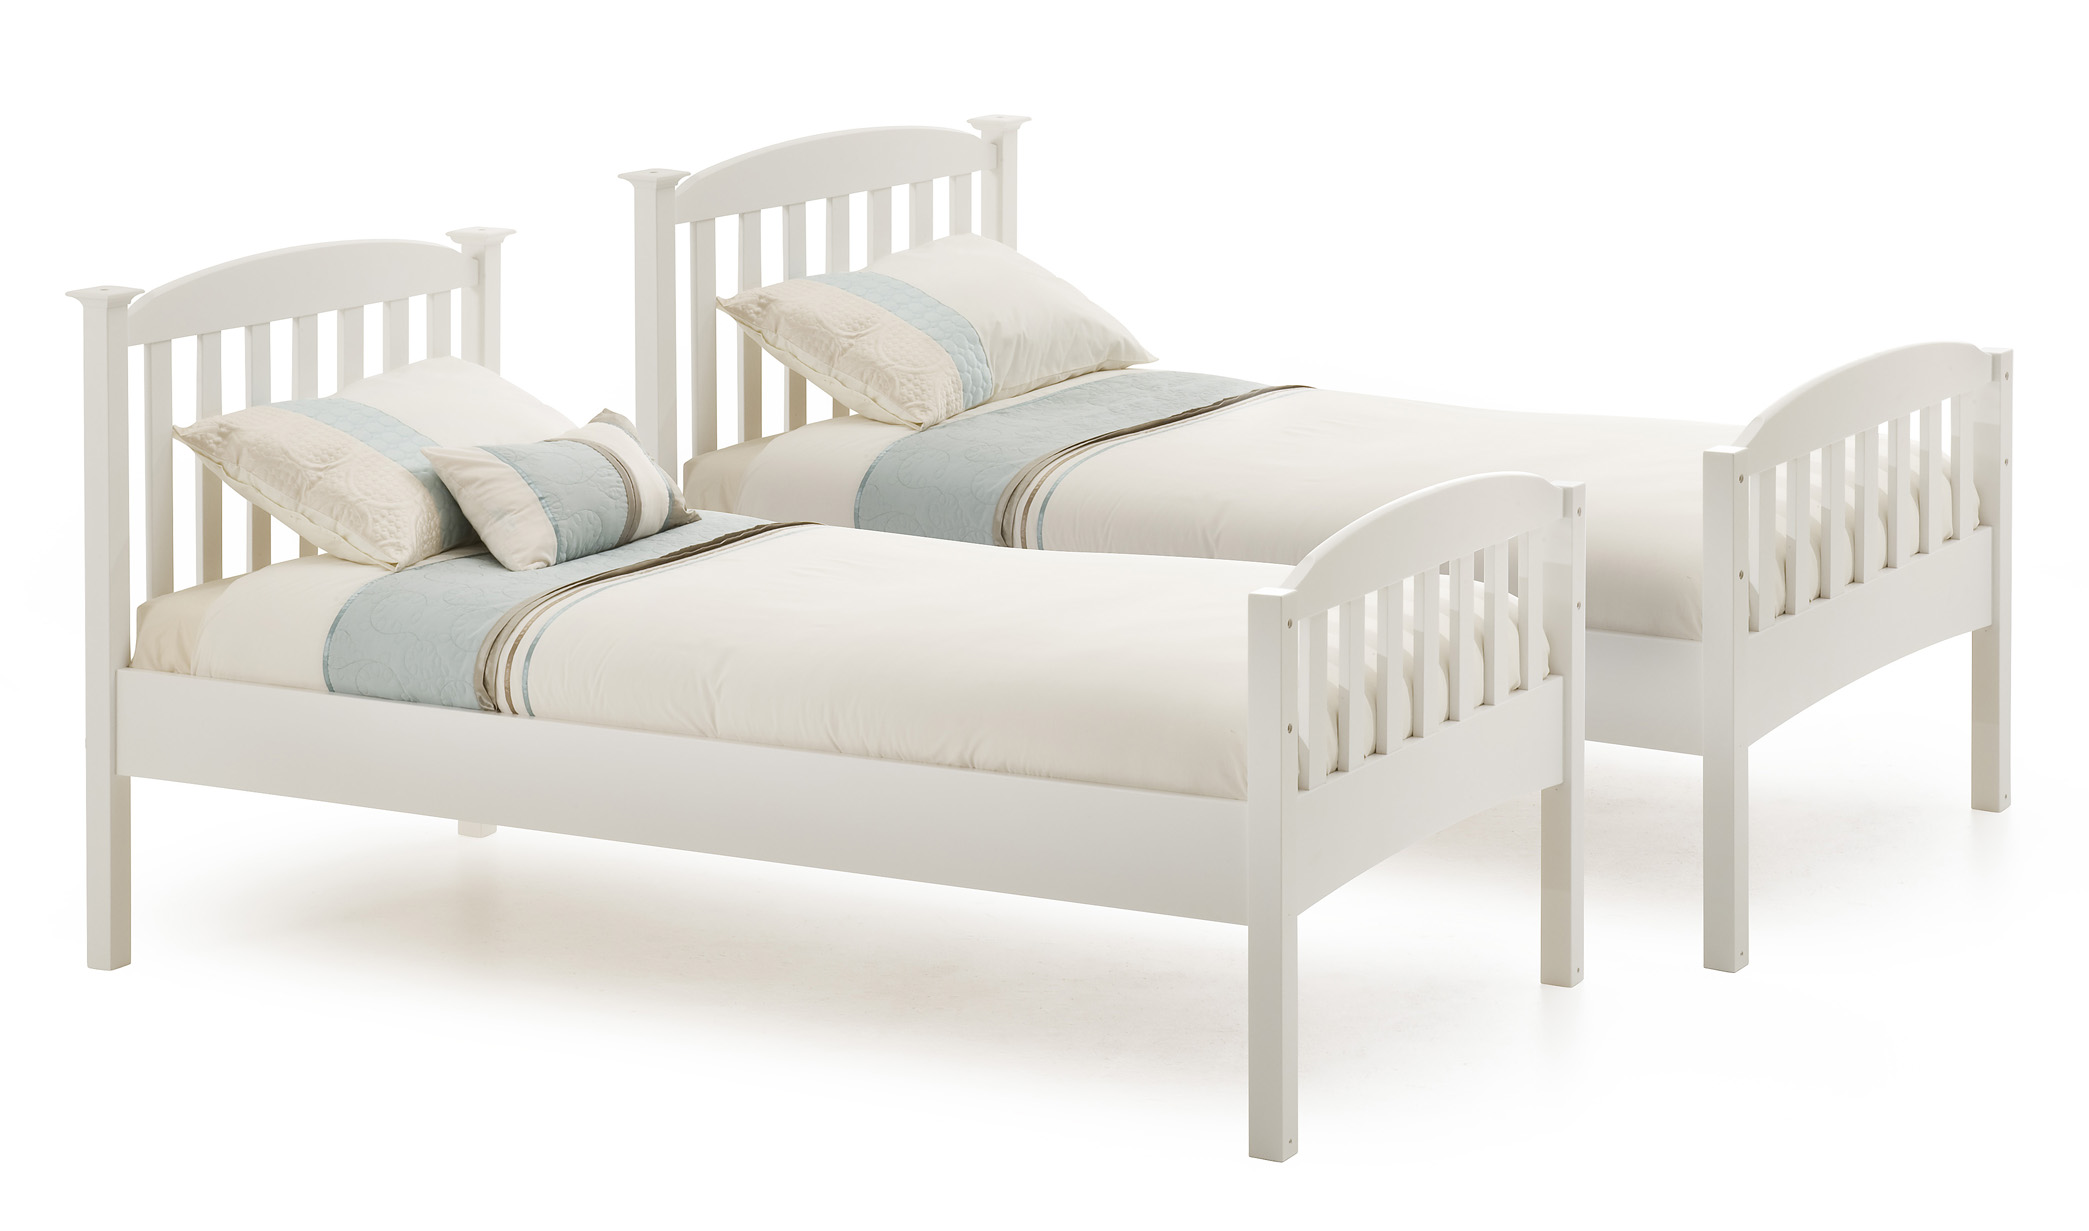 White Bed Frame Ft Ft Wooden Serene Santo Single Small Double Bed